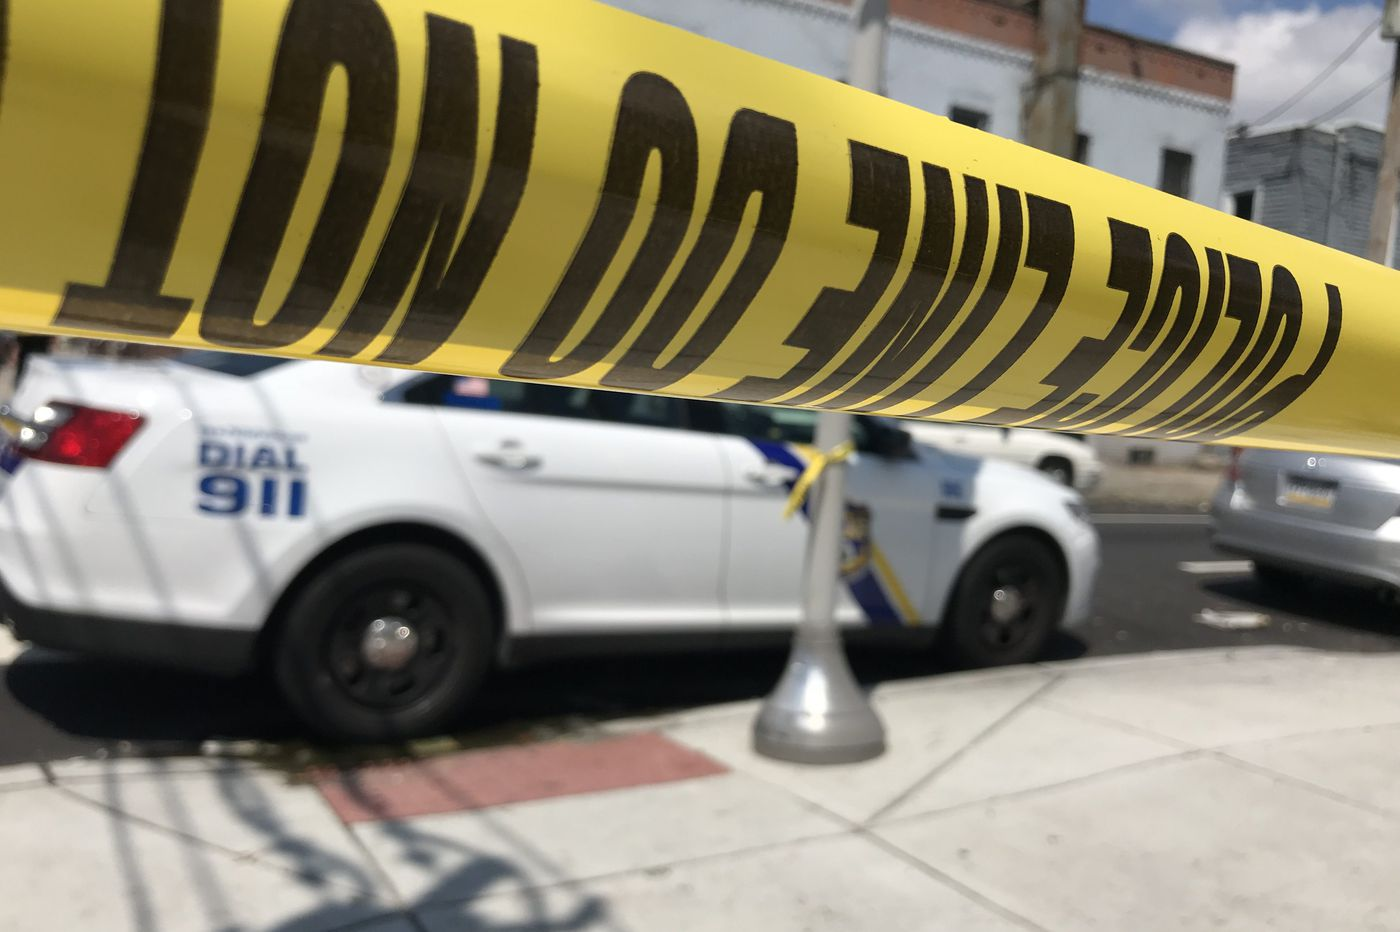 Police investigate mysterious fatal stabbing in Northeast Philly